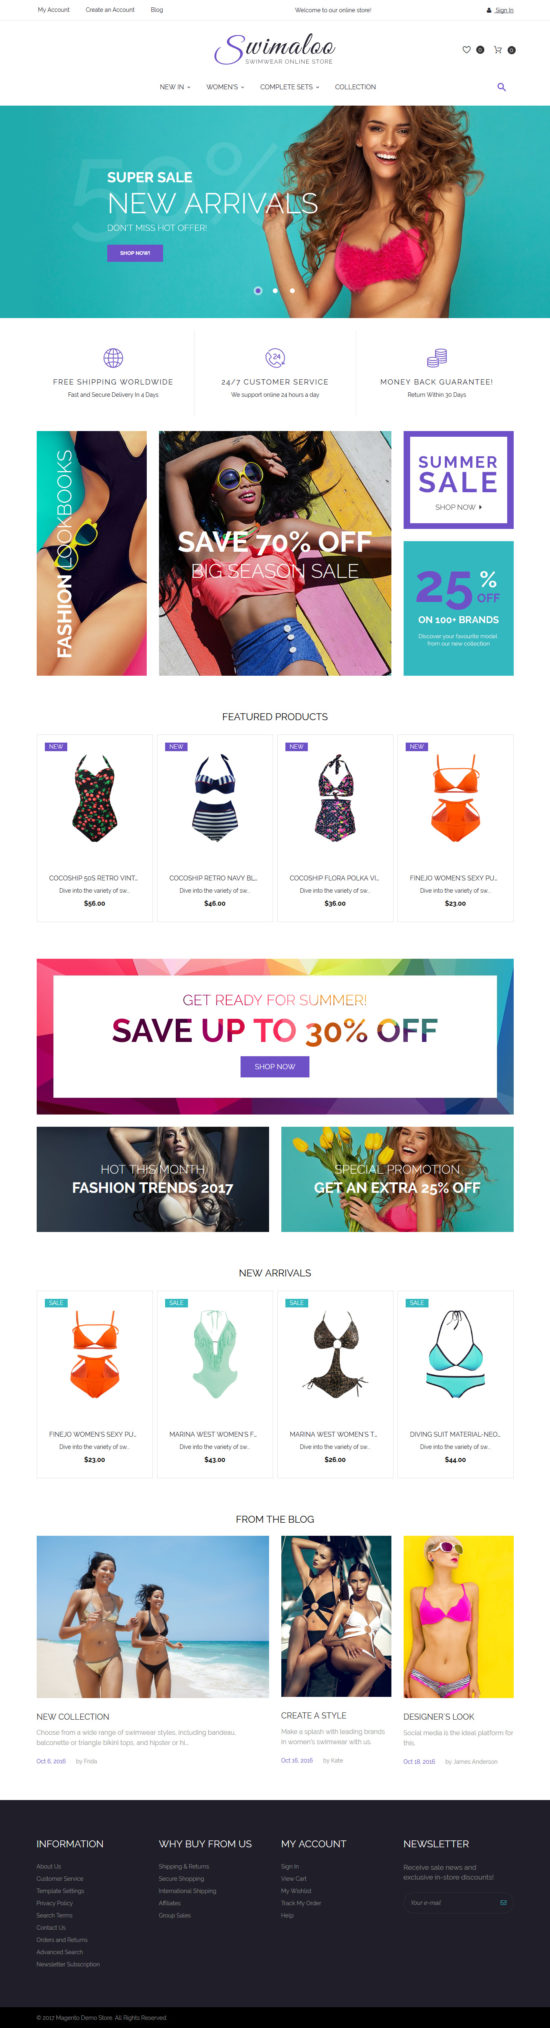 swimaloo template monster swimwear magento theme 01 550x2028 - Swimaloo Magento Theme